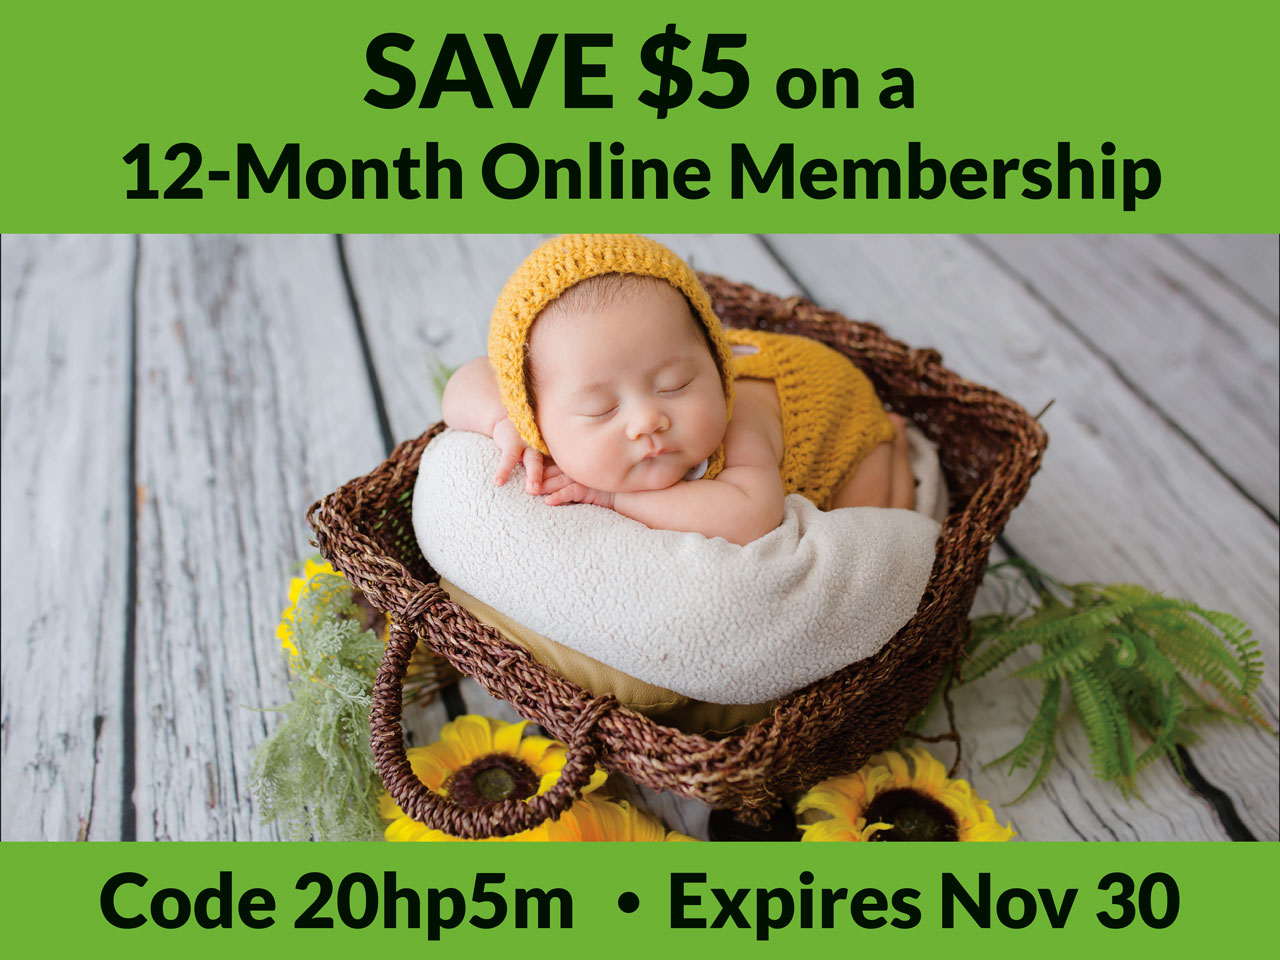 Save $5 on a 12-month online membeship